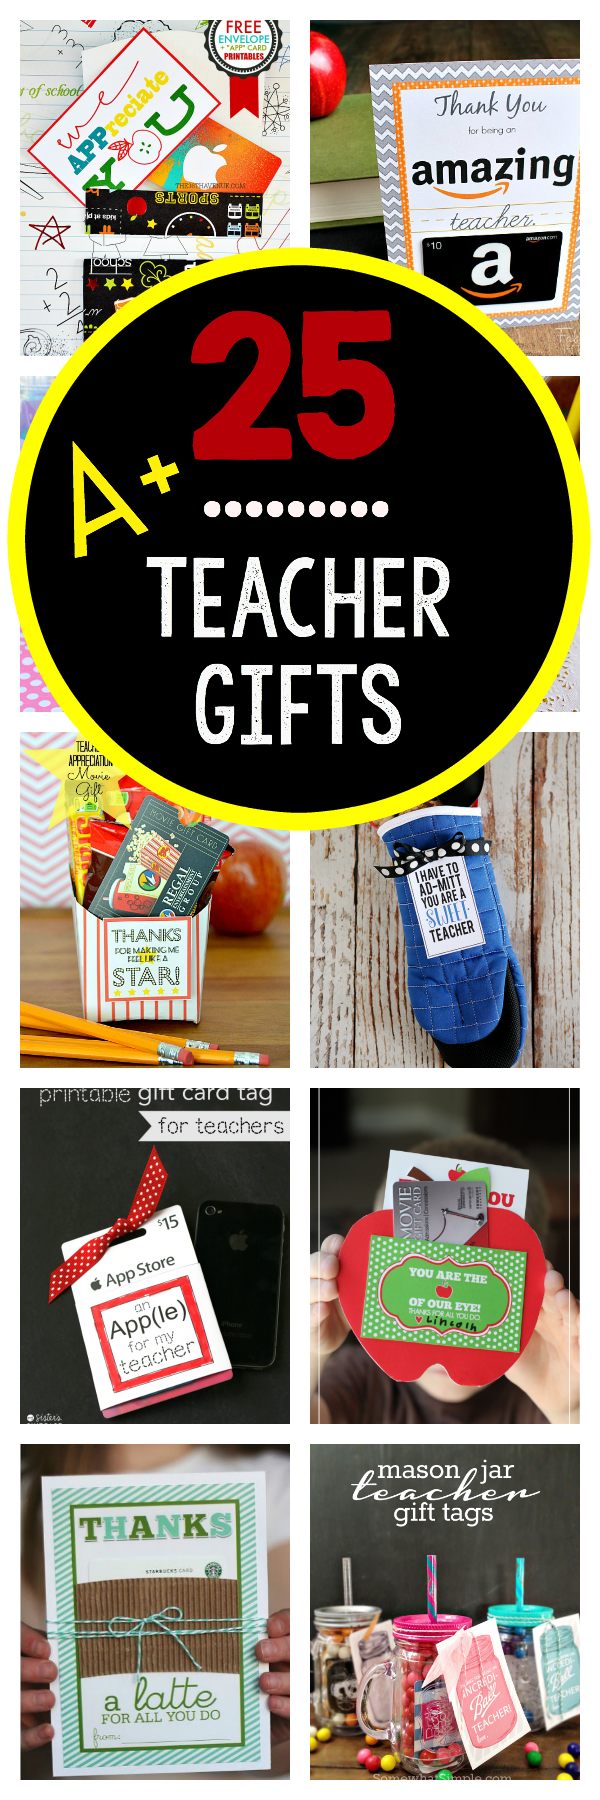 Teacher Appreciation Gifts That Teachers Will Really Love! These cute and easy teacher gifts are creative ideas of things to give your teacher that she will actually love and use. Great teacher gifts! #teacherappreciation #teachergifts #teacherappreciationweek #teachergiftideas